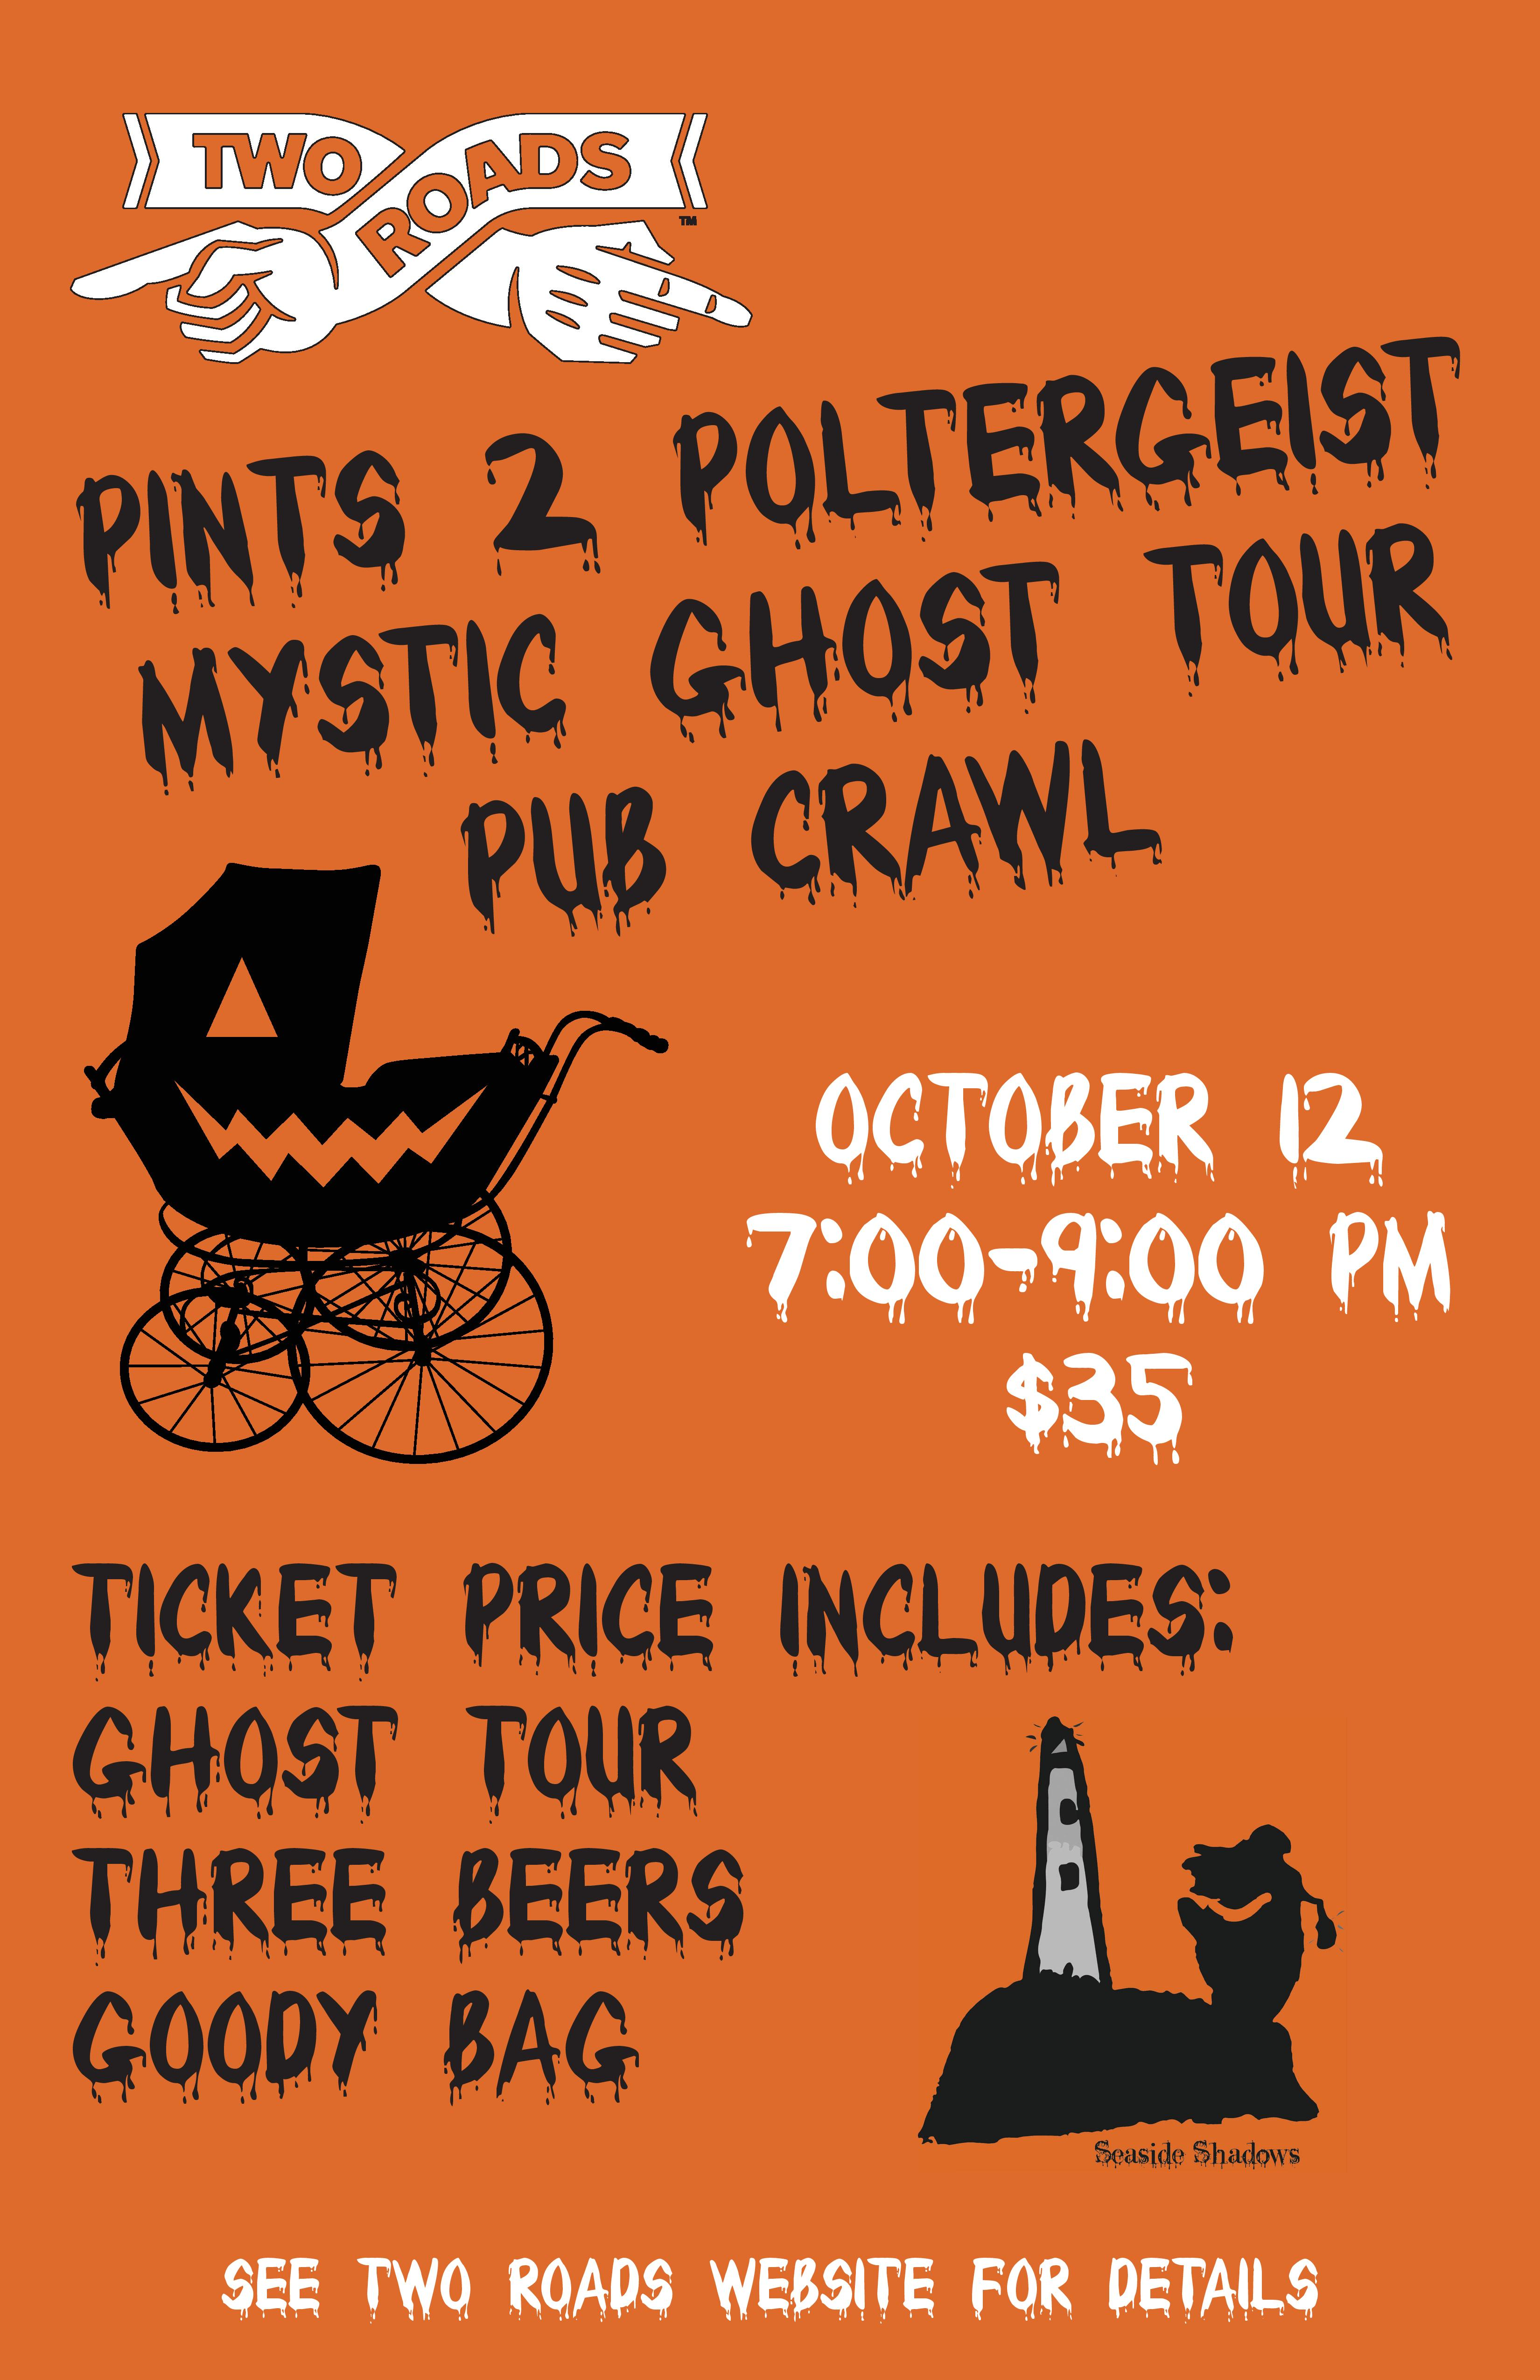 Engine Room Mystic Ct: Tickets For Pints To Poltergeist In Mystic From BeerFests.com